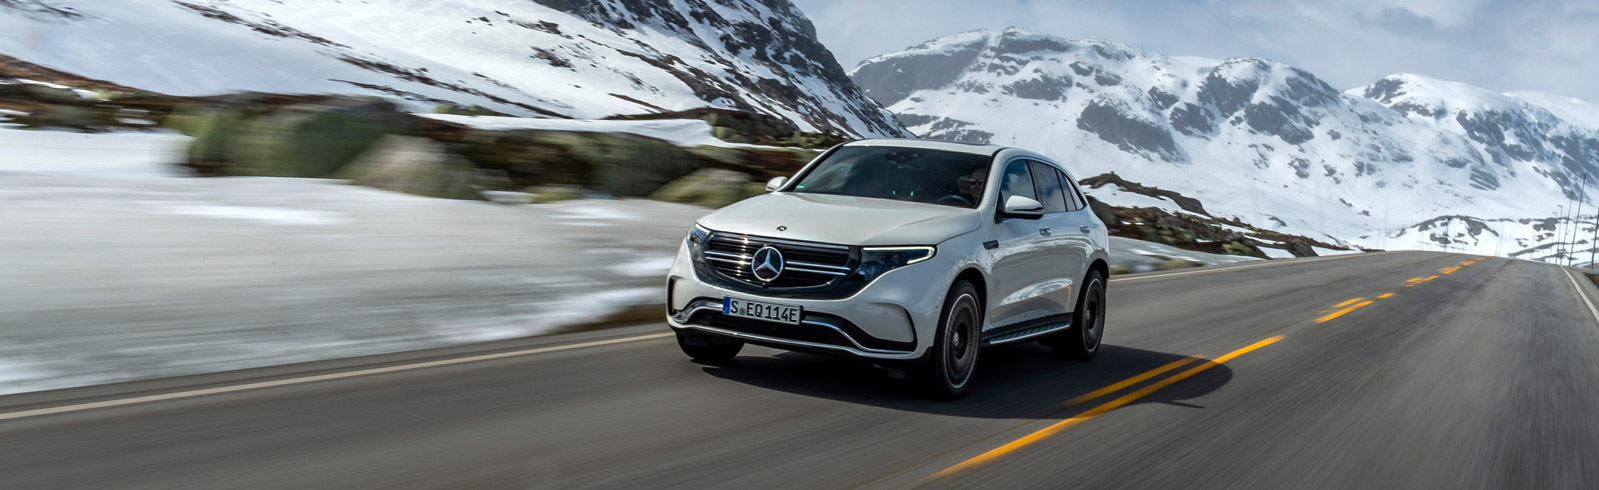 The Mercedes-Benz EQC 400 4MATIC is now available as a base model priced from €66,068.80